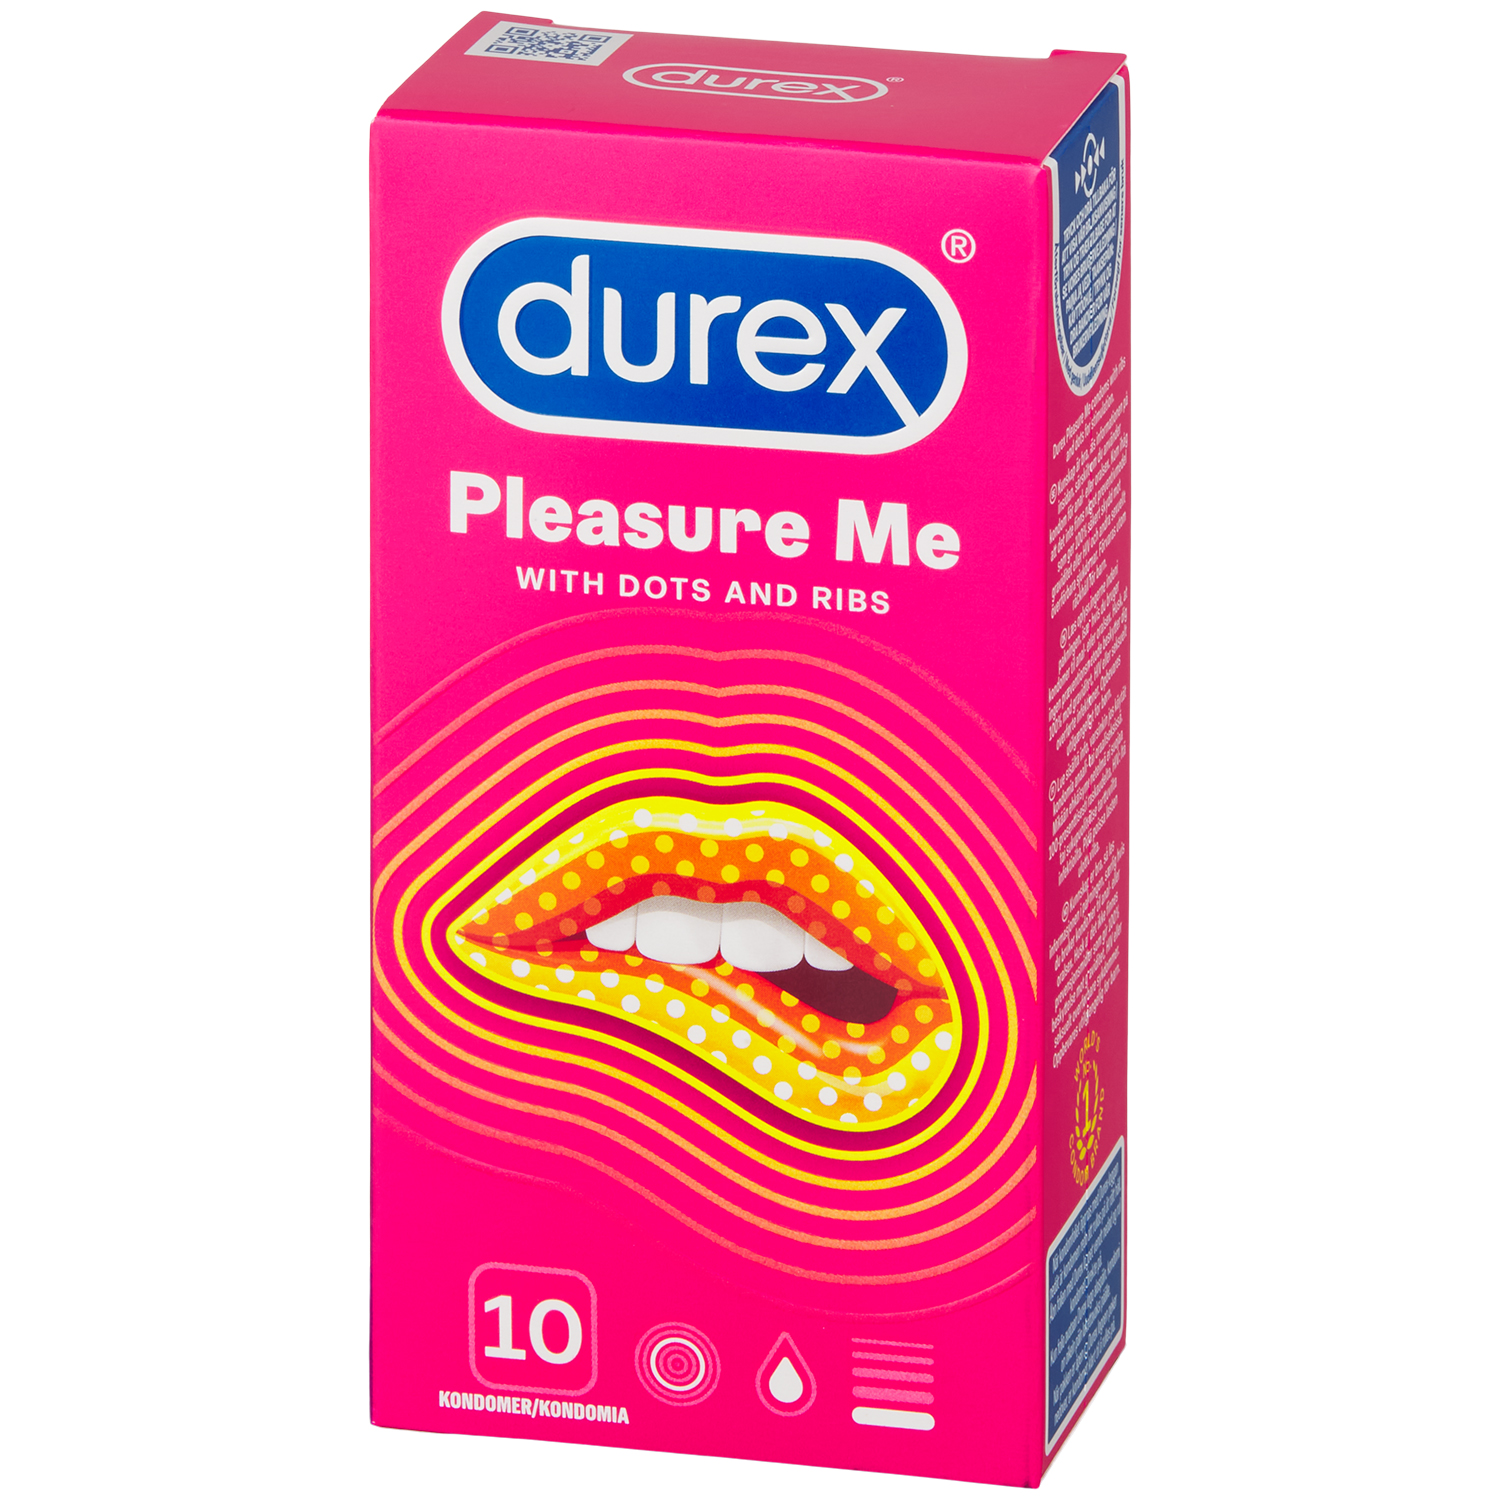 Durex Pleasure Me Kondomer 10 stk